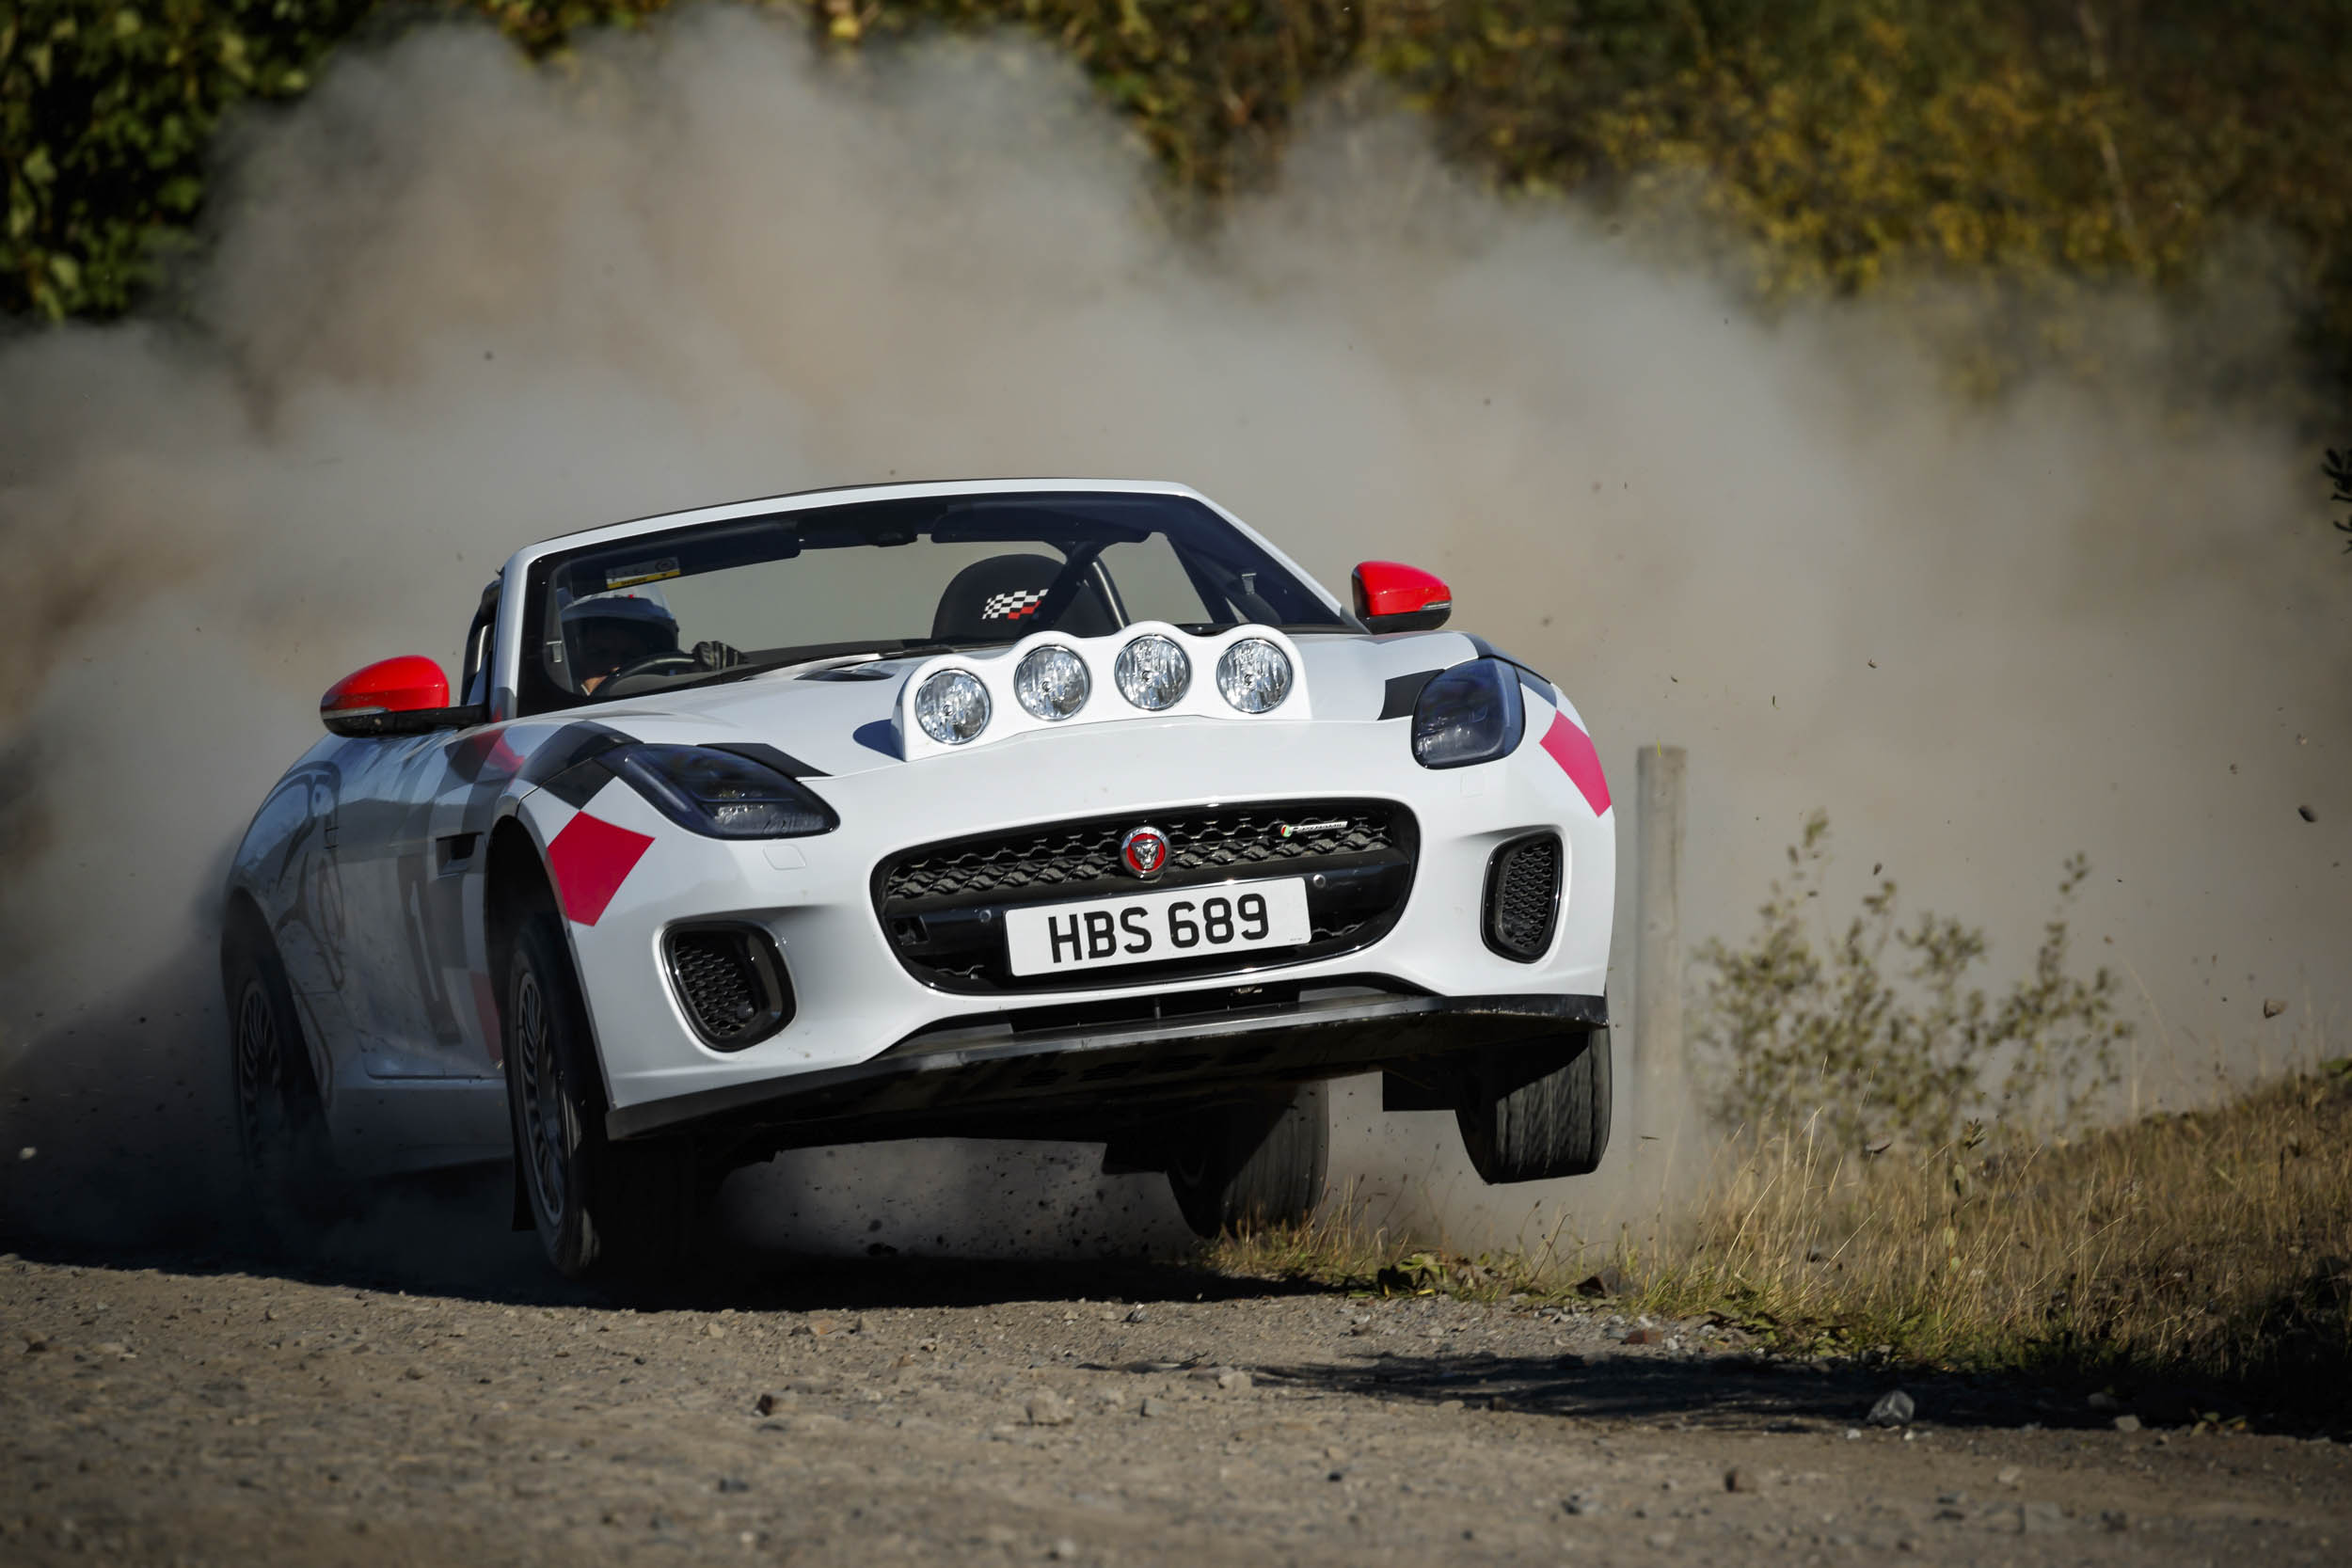 Jaguar's rally-ready F-Type is a wicked homage to the XK120 thumbnail